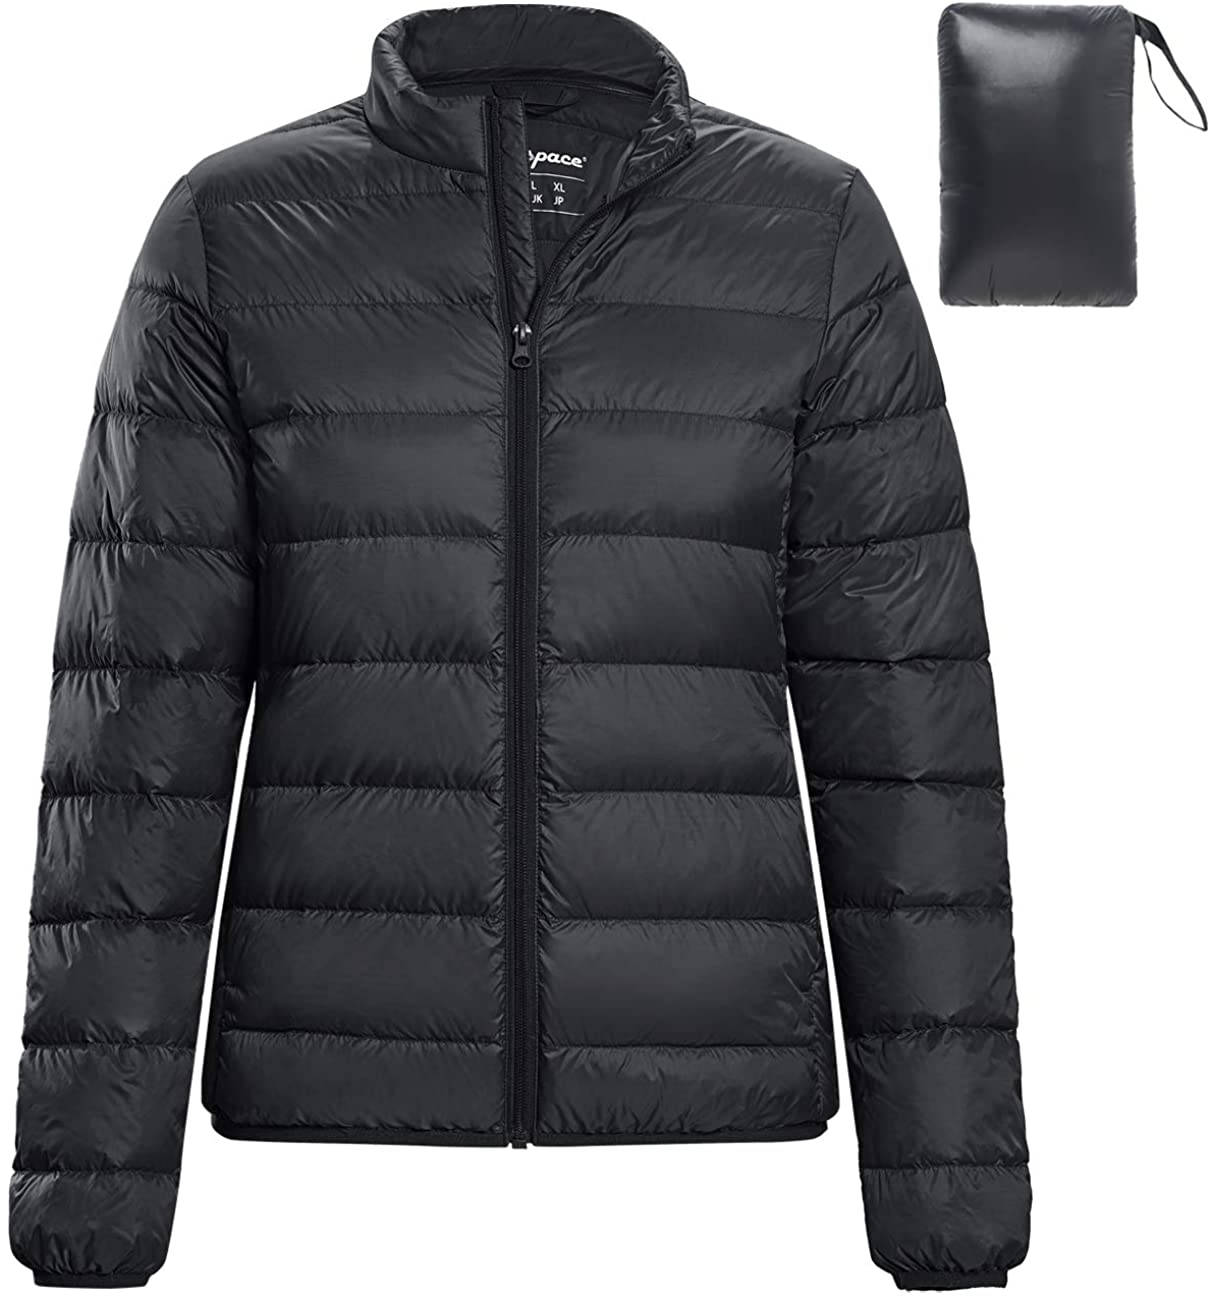 fit space Down Jacket Lightweight for Women Insulated Water-Resistant Puffer Coat Outerwear Packable